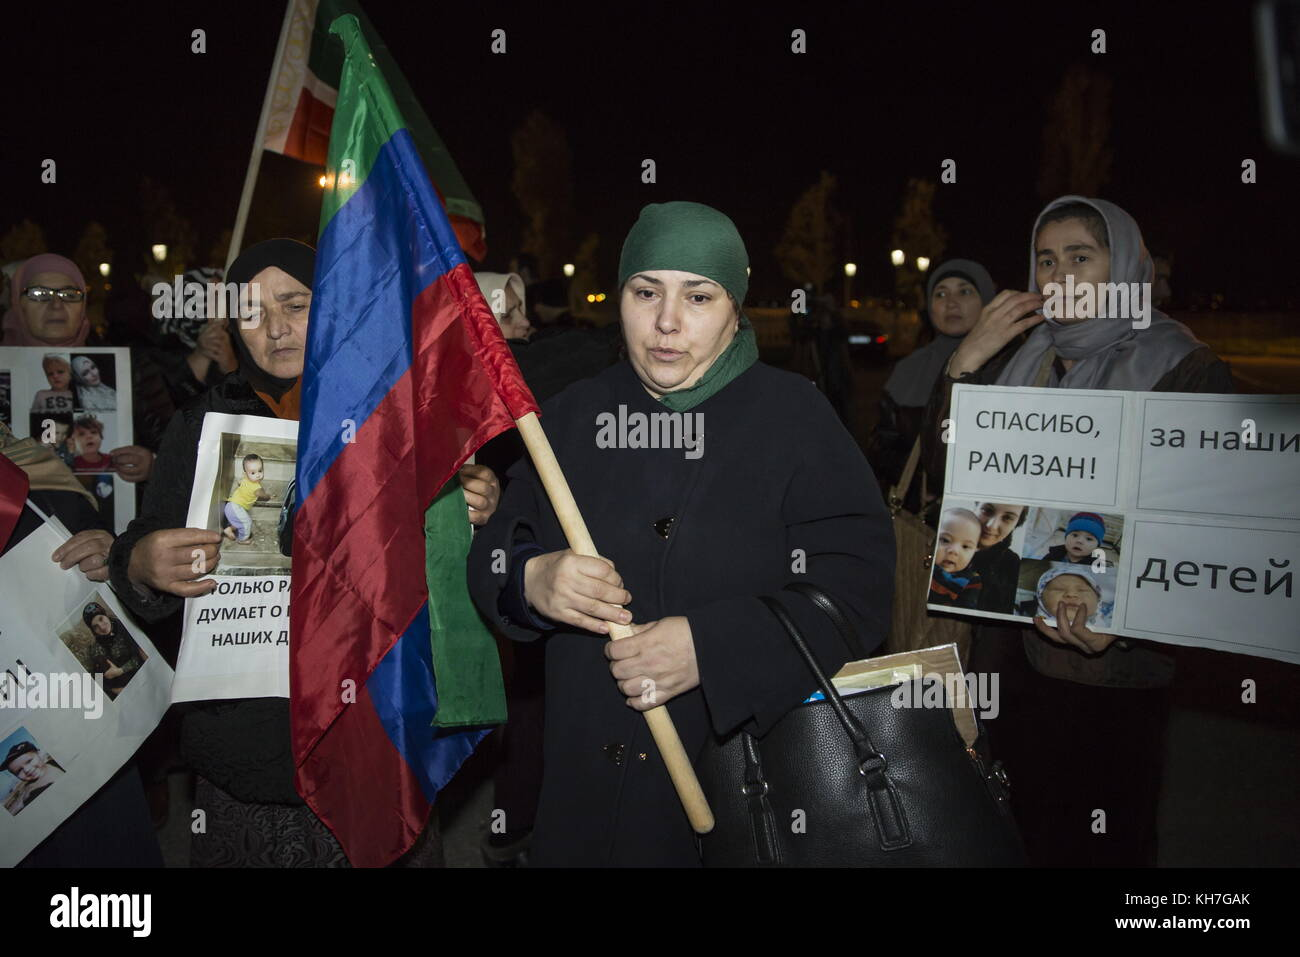 Grozny, Russia. 13th Nov, 2017. People hold photos of their missing relatives and posters thanking Chechnya Head - Stock Image